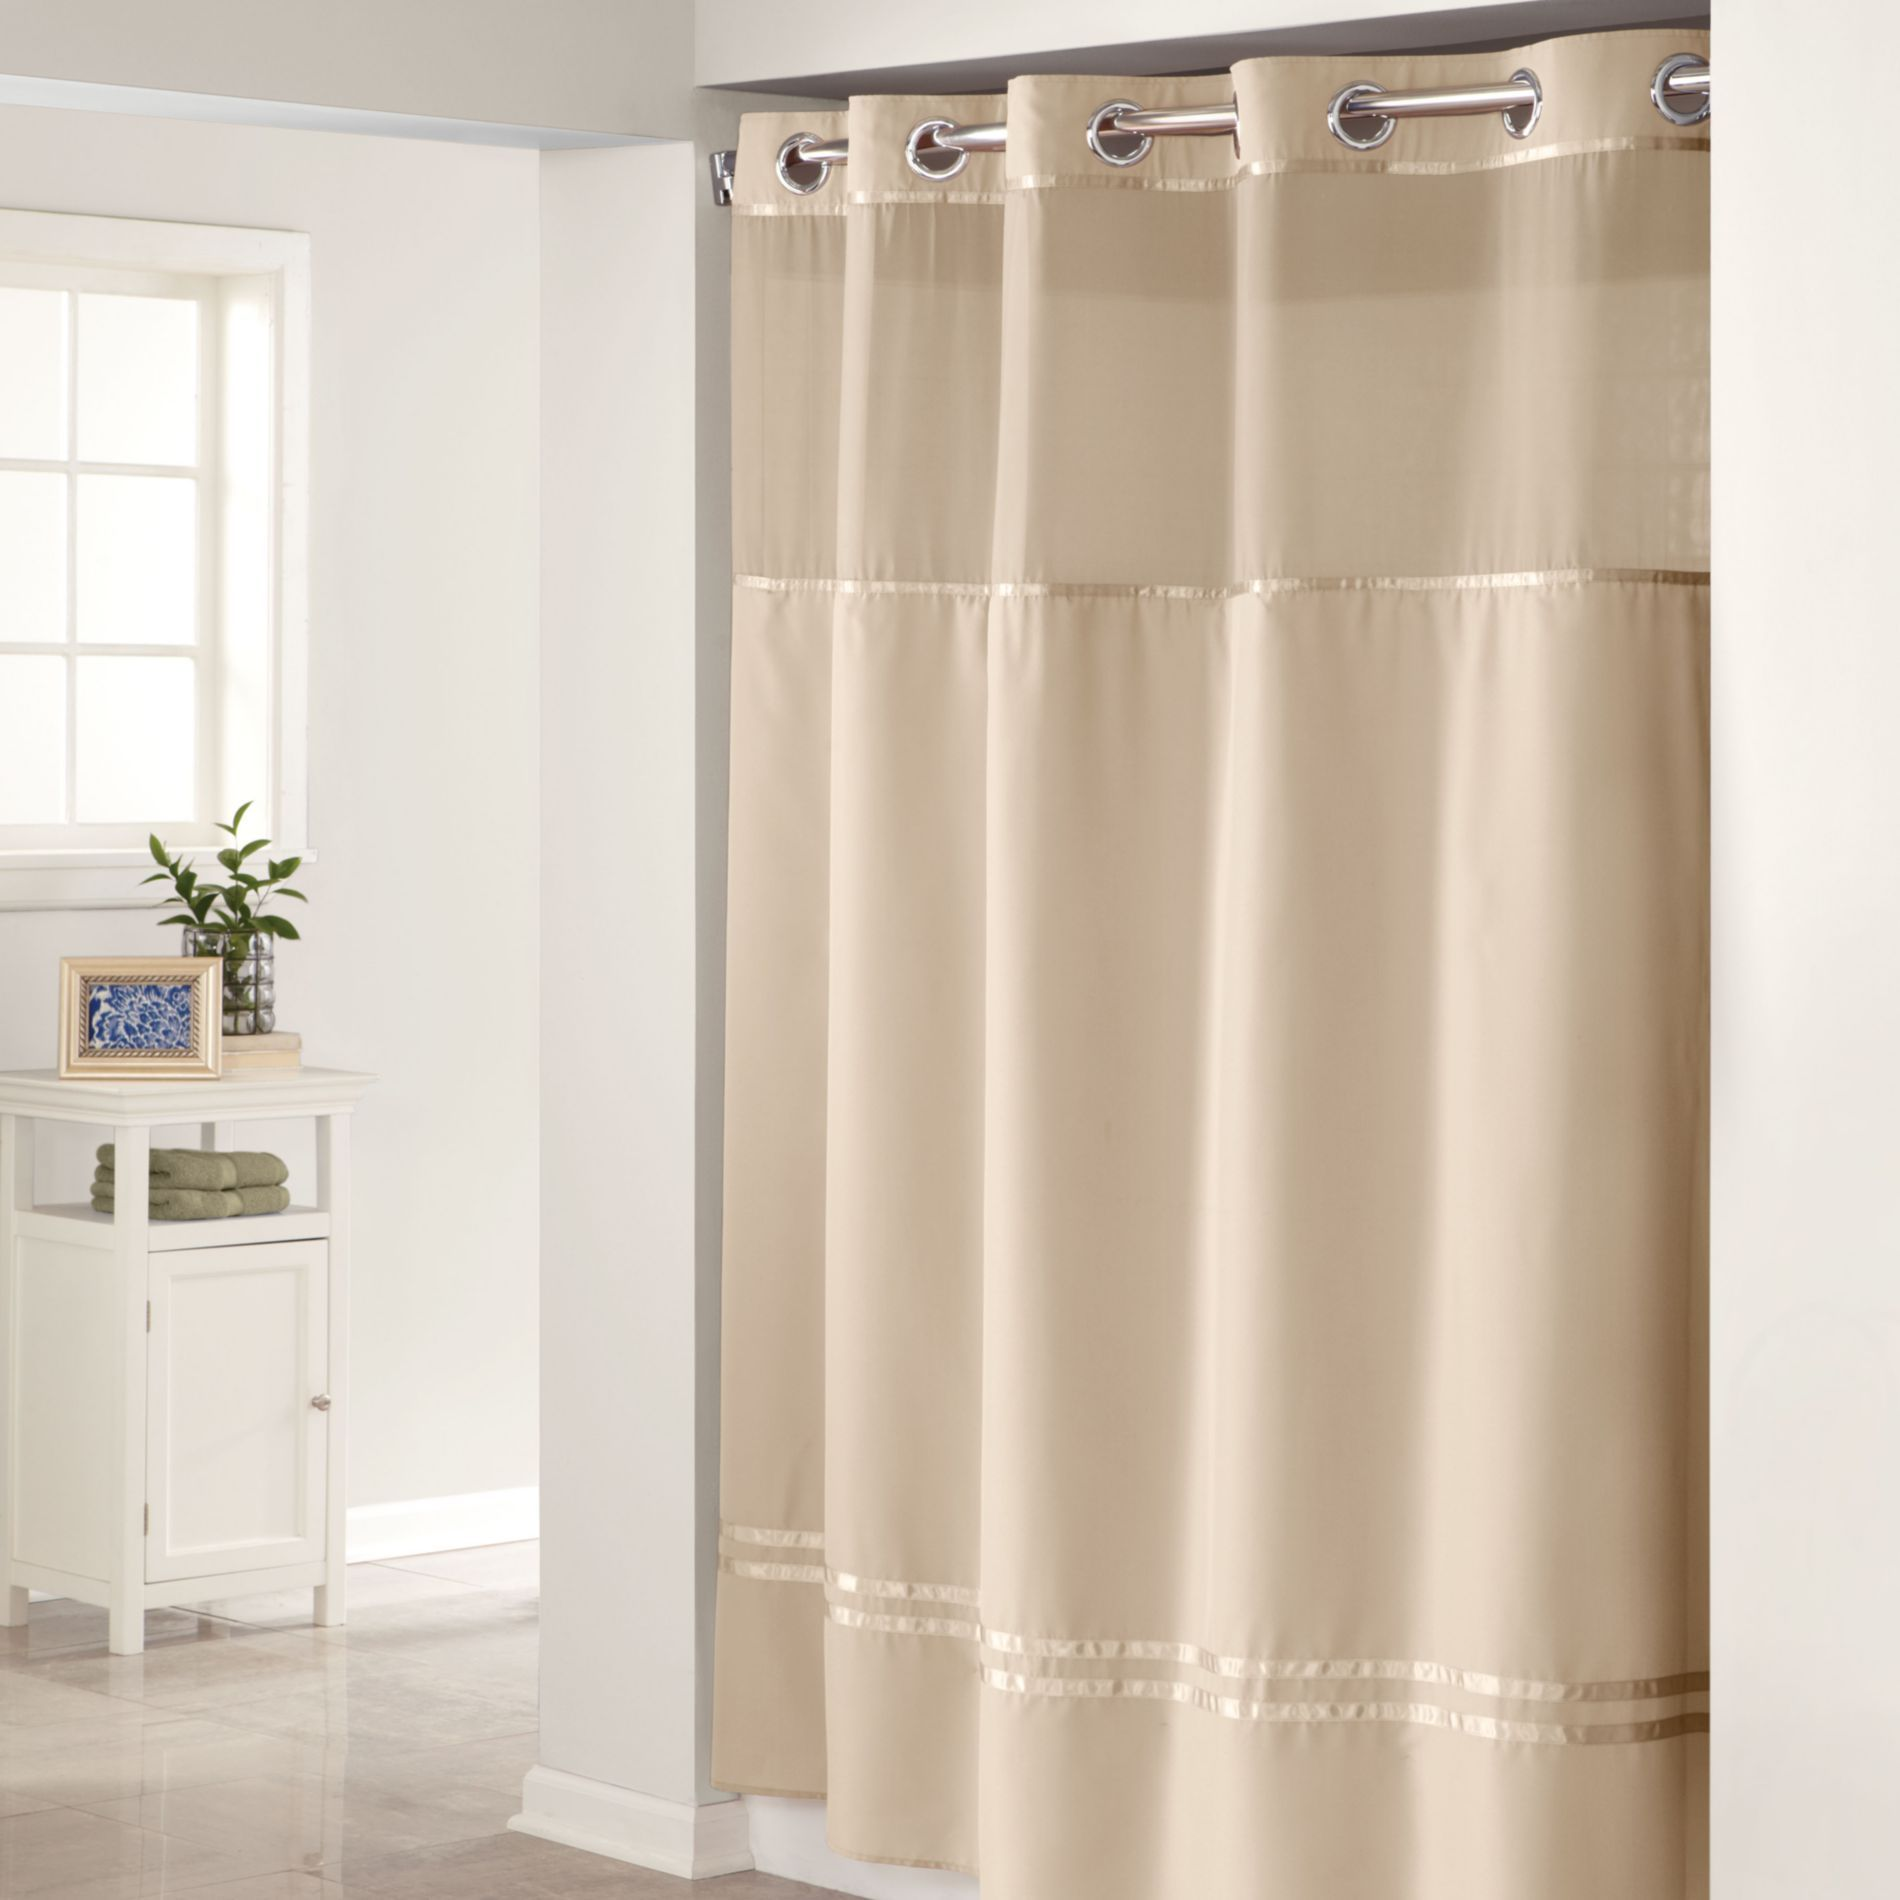 74 Shower Curtain Hookless Escape Taupe 71 Inch W X 74 Inch L Fabric Shower Curtain